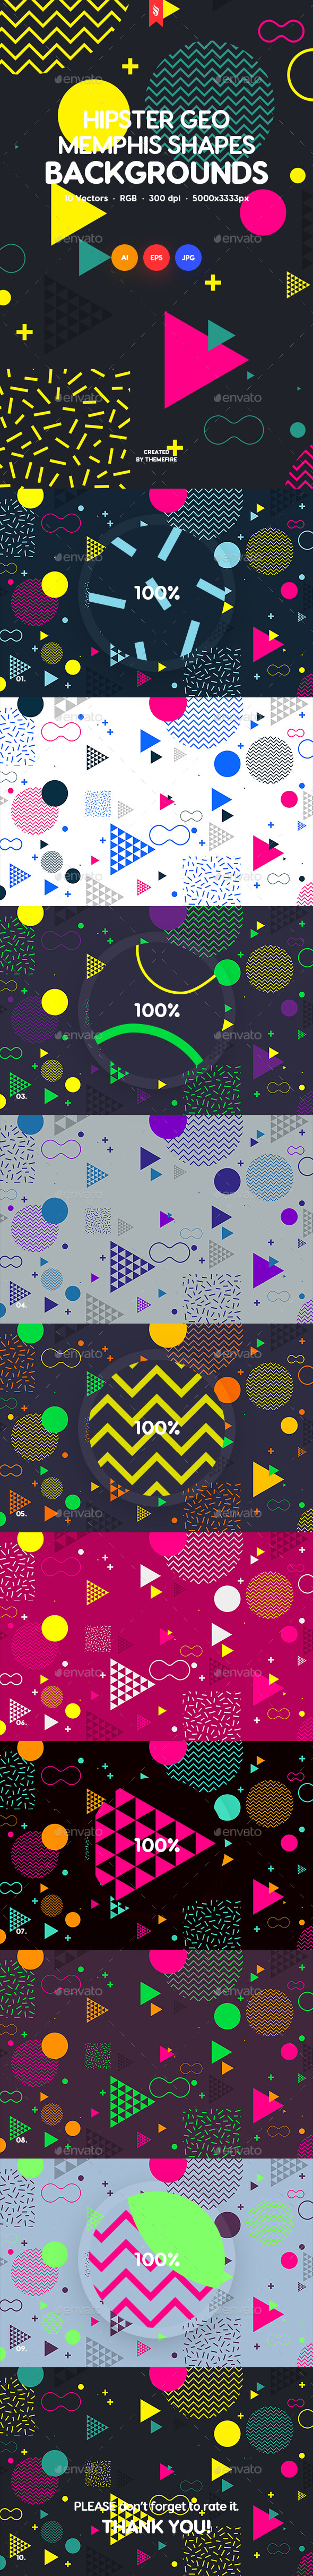 Abstract Hipster Geometric Shapes in Memphis Style Design Backgrounds - Patterns Backgrounds